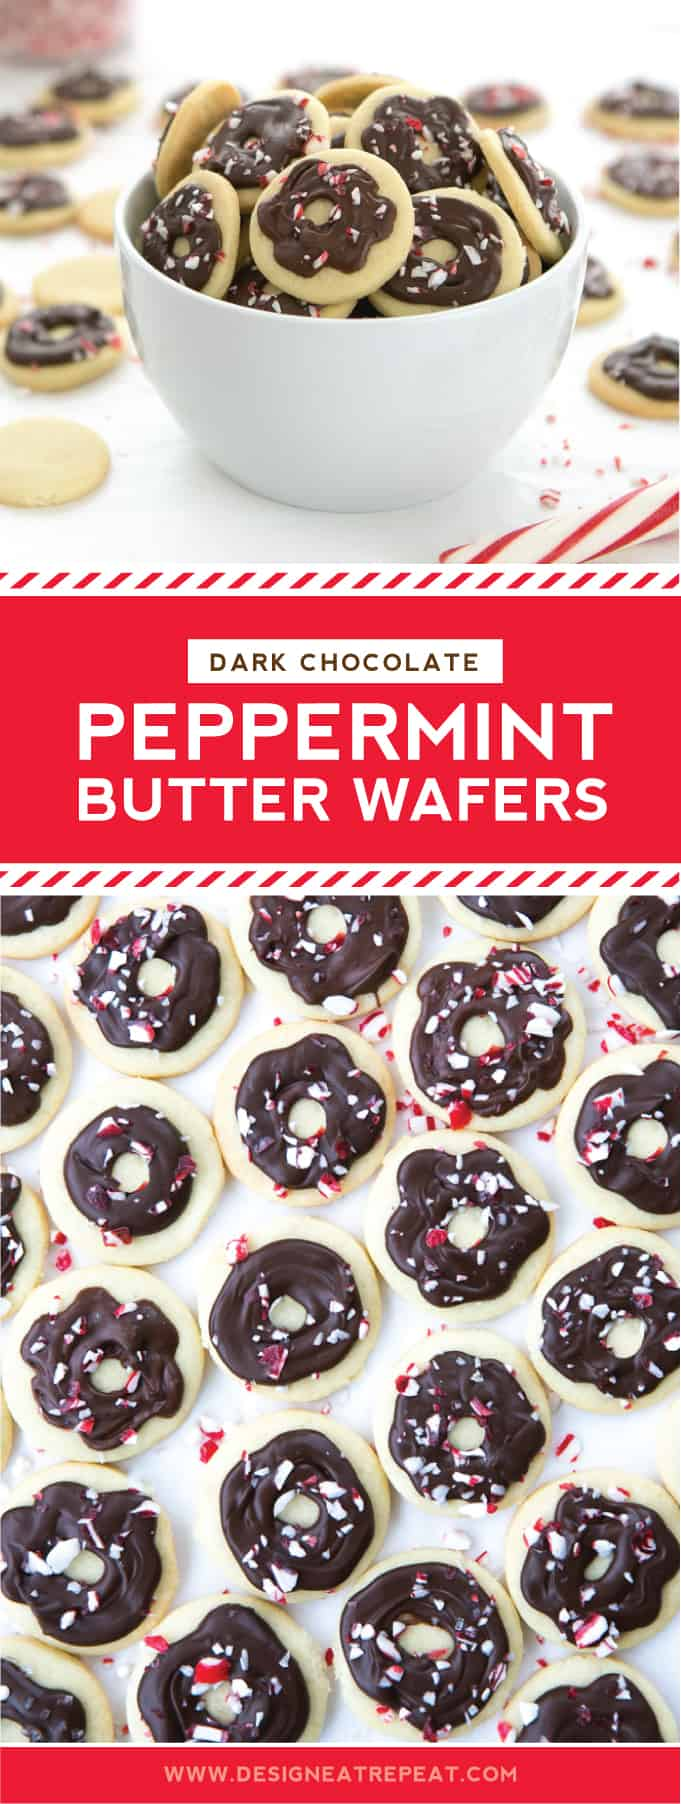 Whip up these mini dark chocolate peppermint butter wafers for a fun bite-sized holiday snack for the whole crew!